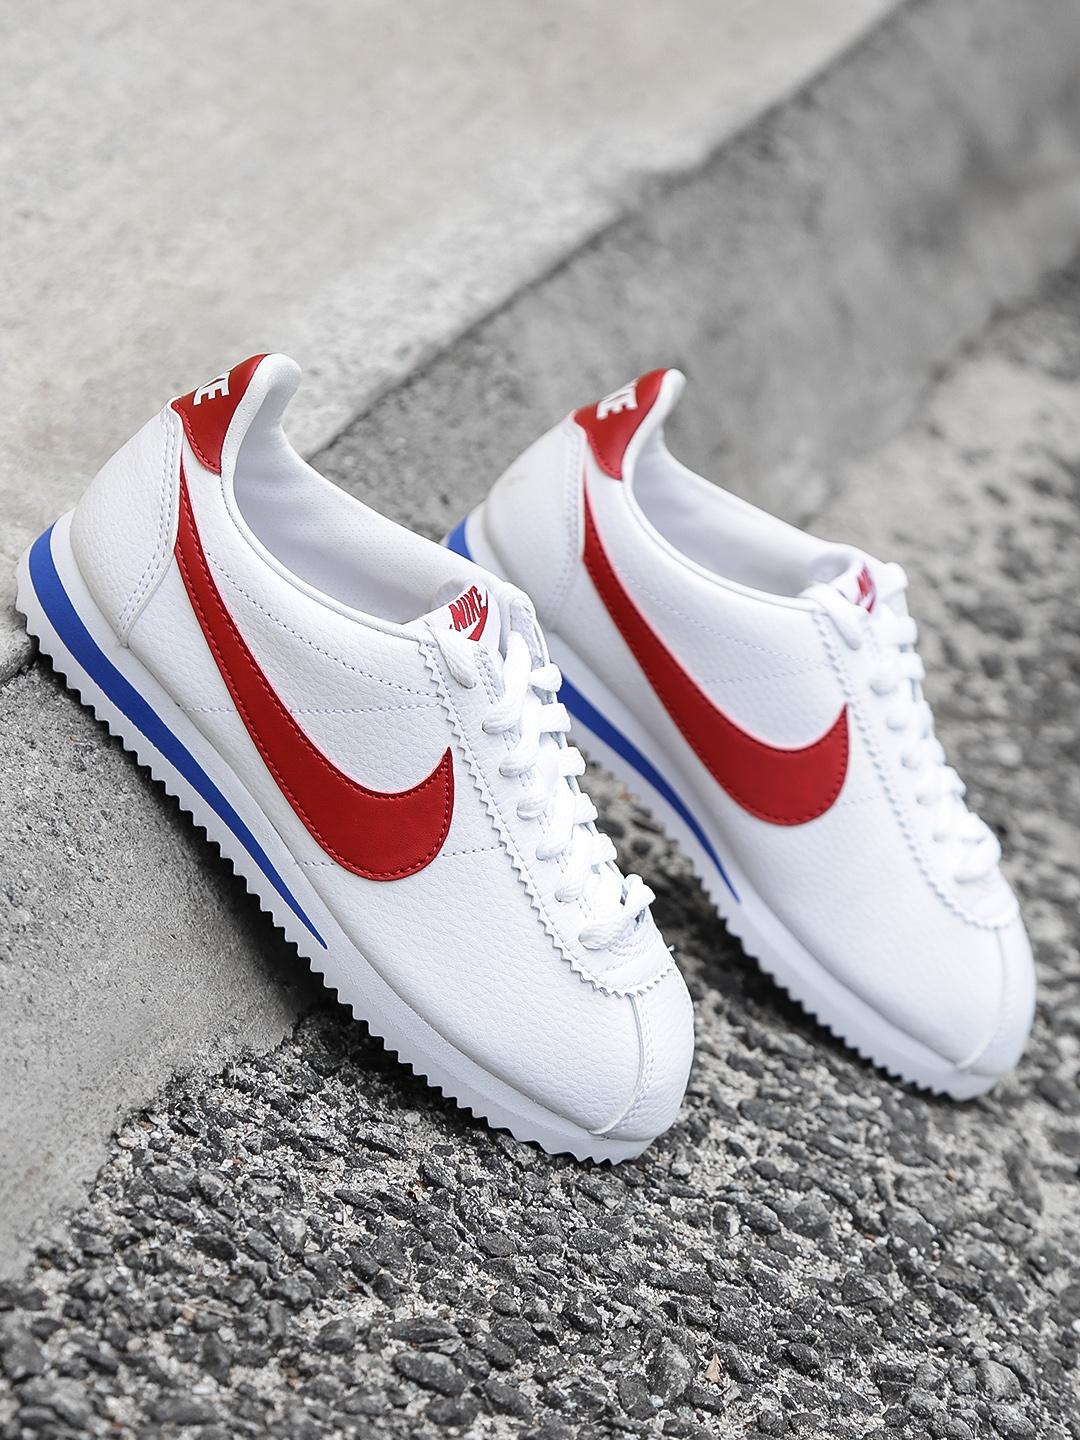 promo code c1bc7 c8fb9 Cortez Forrest Gump Classical Sport Shoes Running Shoes Shock Absorption  hock Resistance Leather (white / red logo) UNISEX